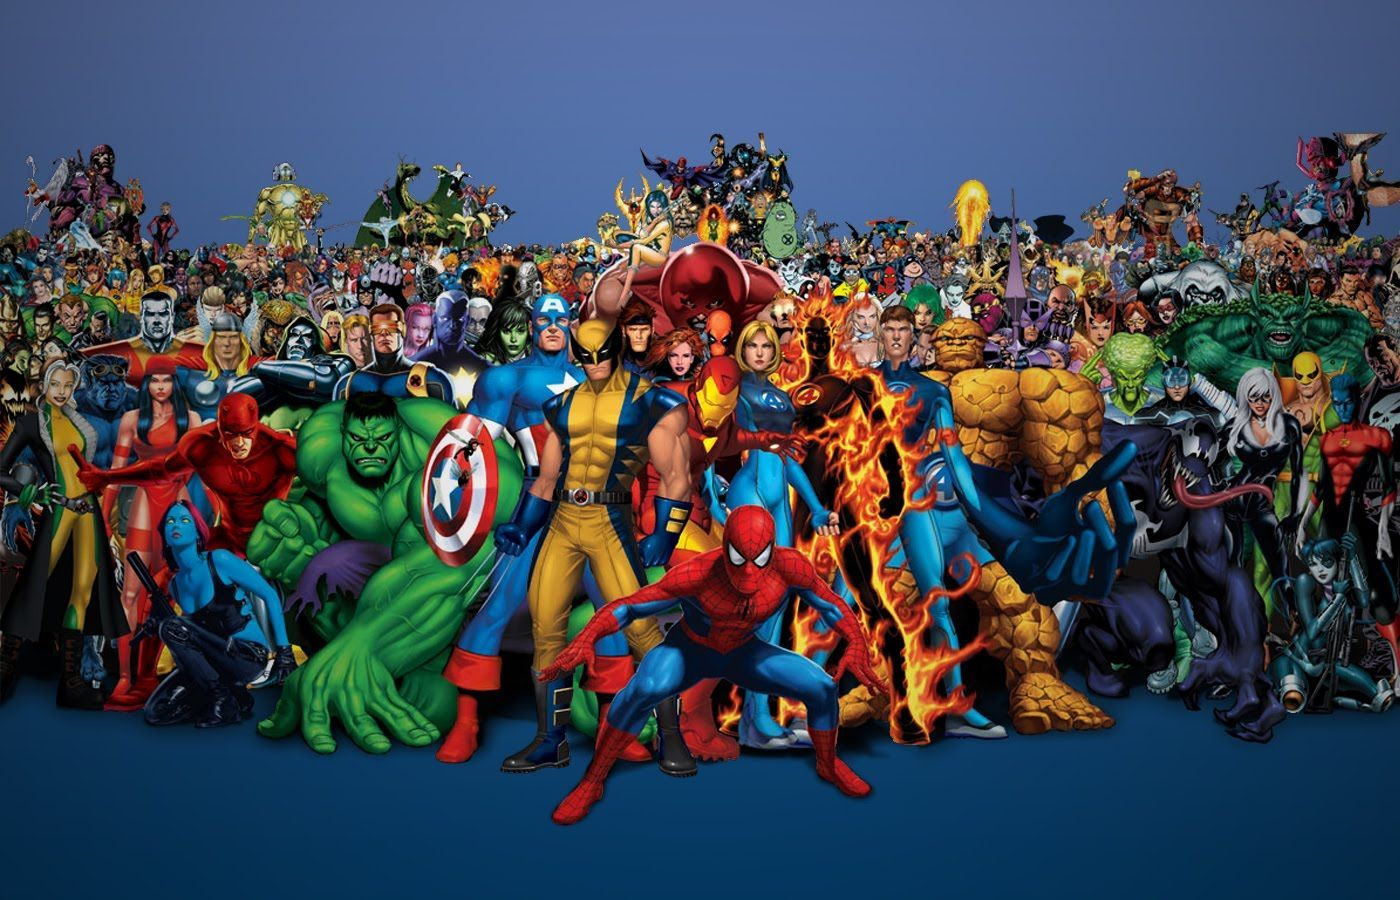 Marvel Heroes Players Demanding Refunds For In Game Purchases After Shut Down News